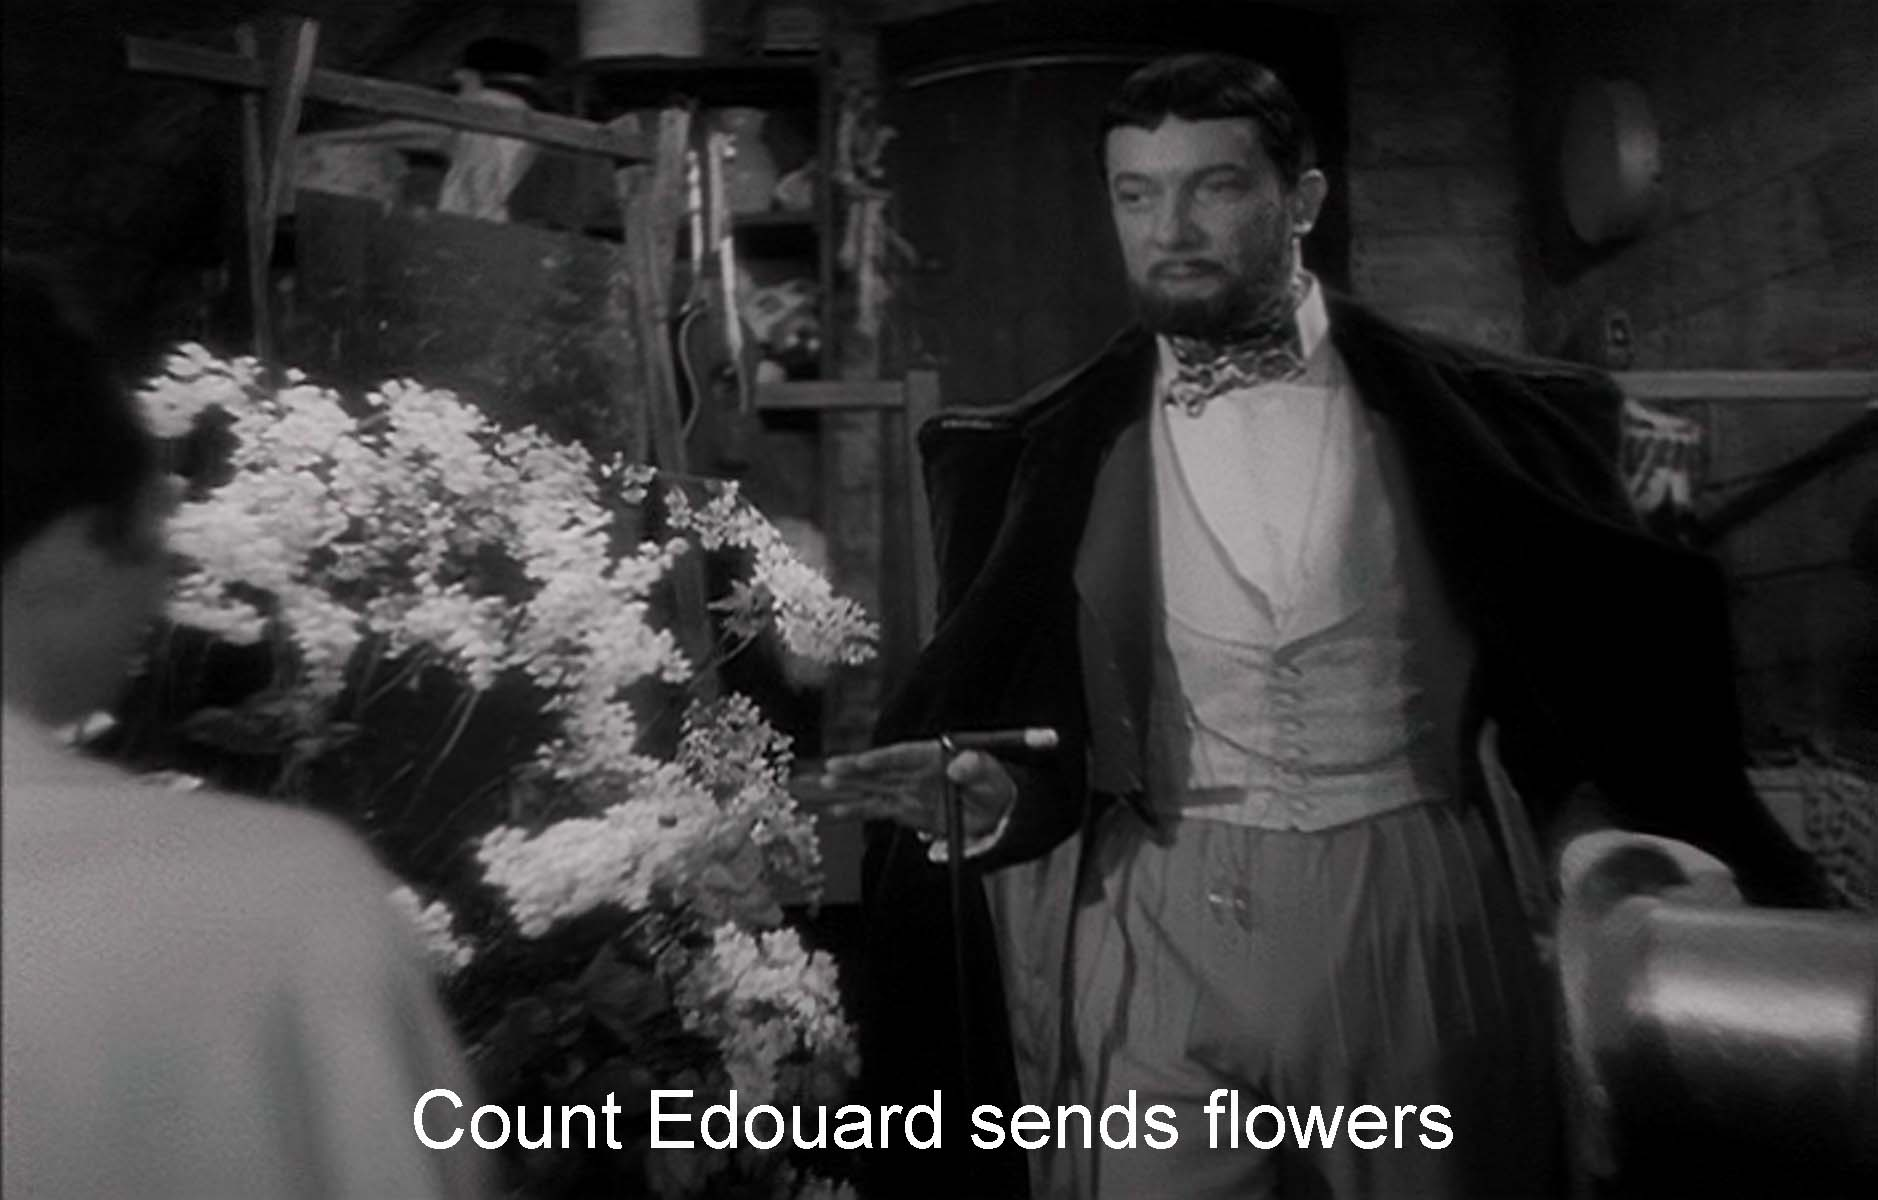 Count Edouard sends flowers